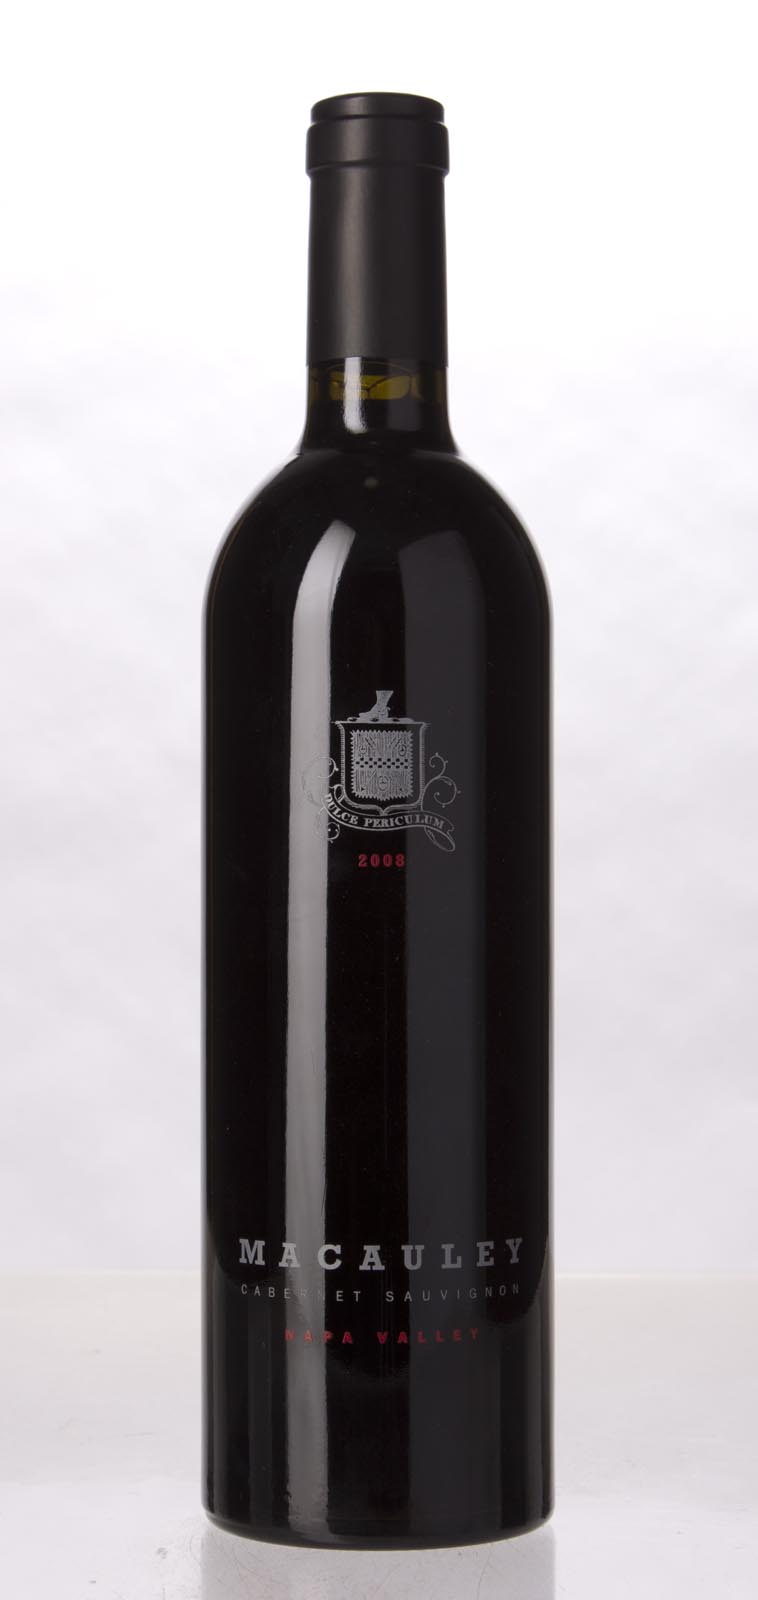 Macauley Cabernet Sauvignon Napa Valley 2008, 750mL () from The BPW - Merchants of rare and fine wines.